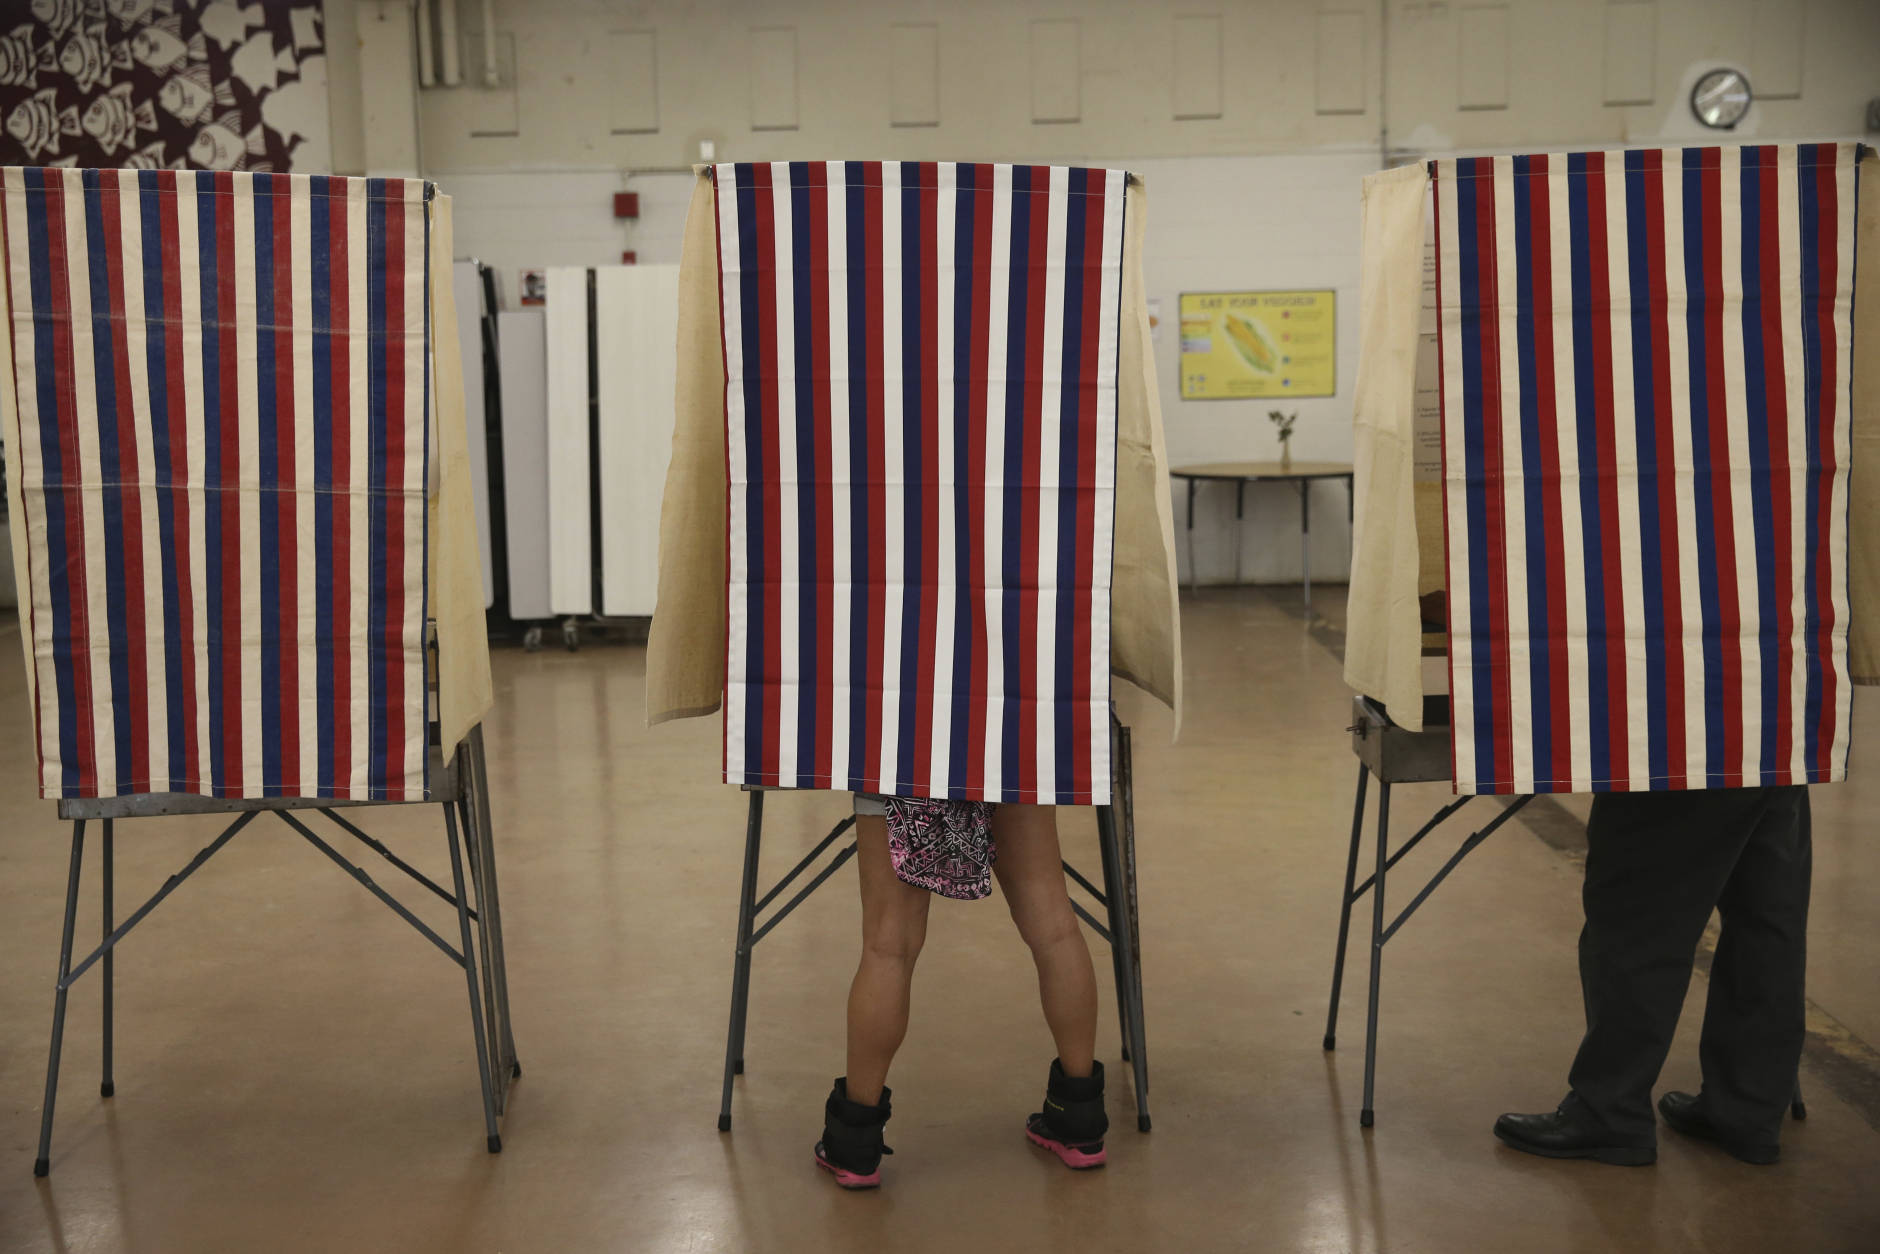 Voters cast their ballots in booths at Farrington High School, Tuesday, Nov. 8, 2016, in Honolulu. (AP Photo/Marco Garcia)